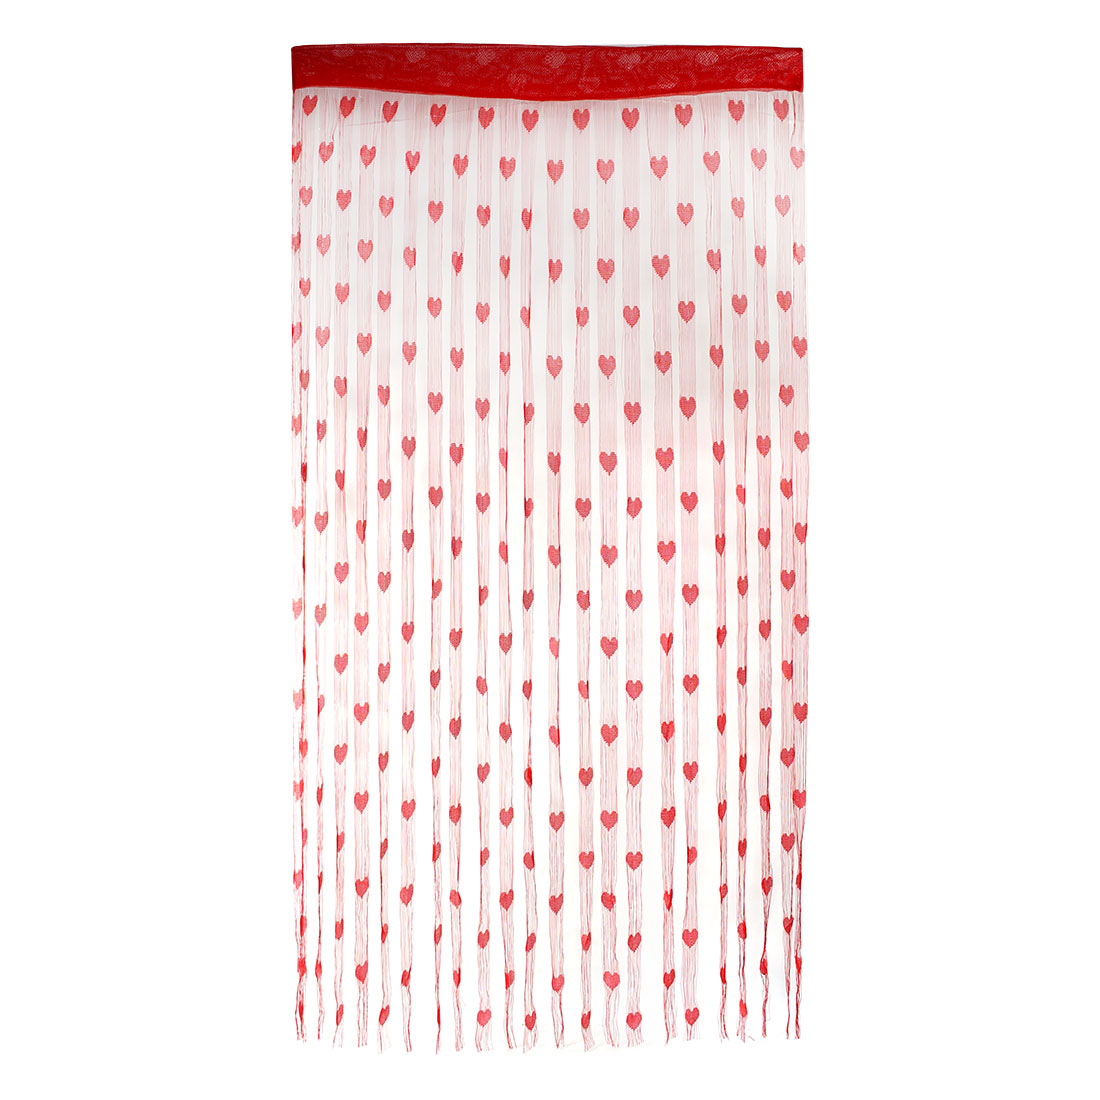 Household Nylon Heart 1 x 2mLine Pattern Divider Tassel String Door Window Curtain Dark Red